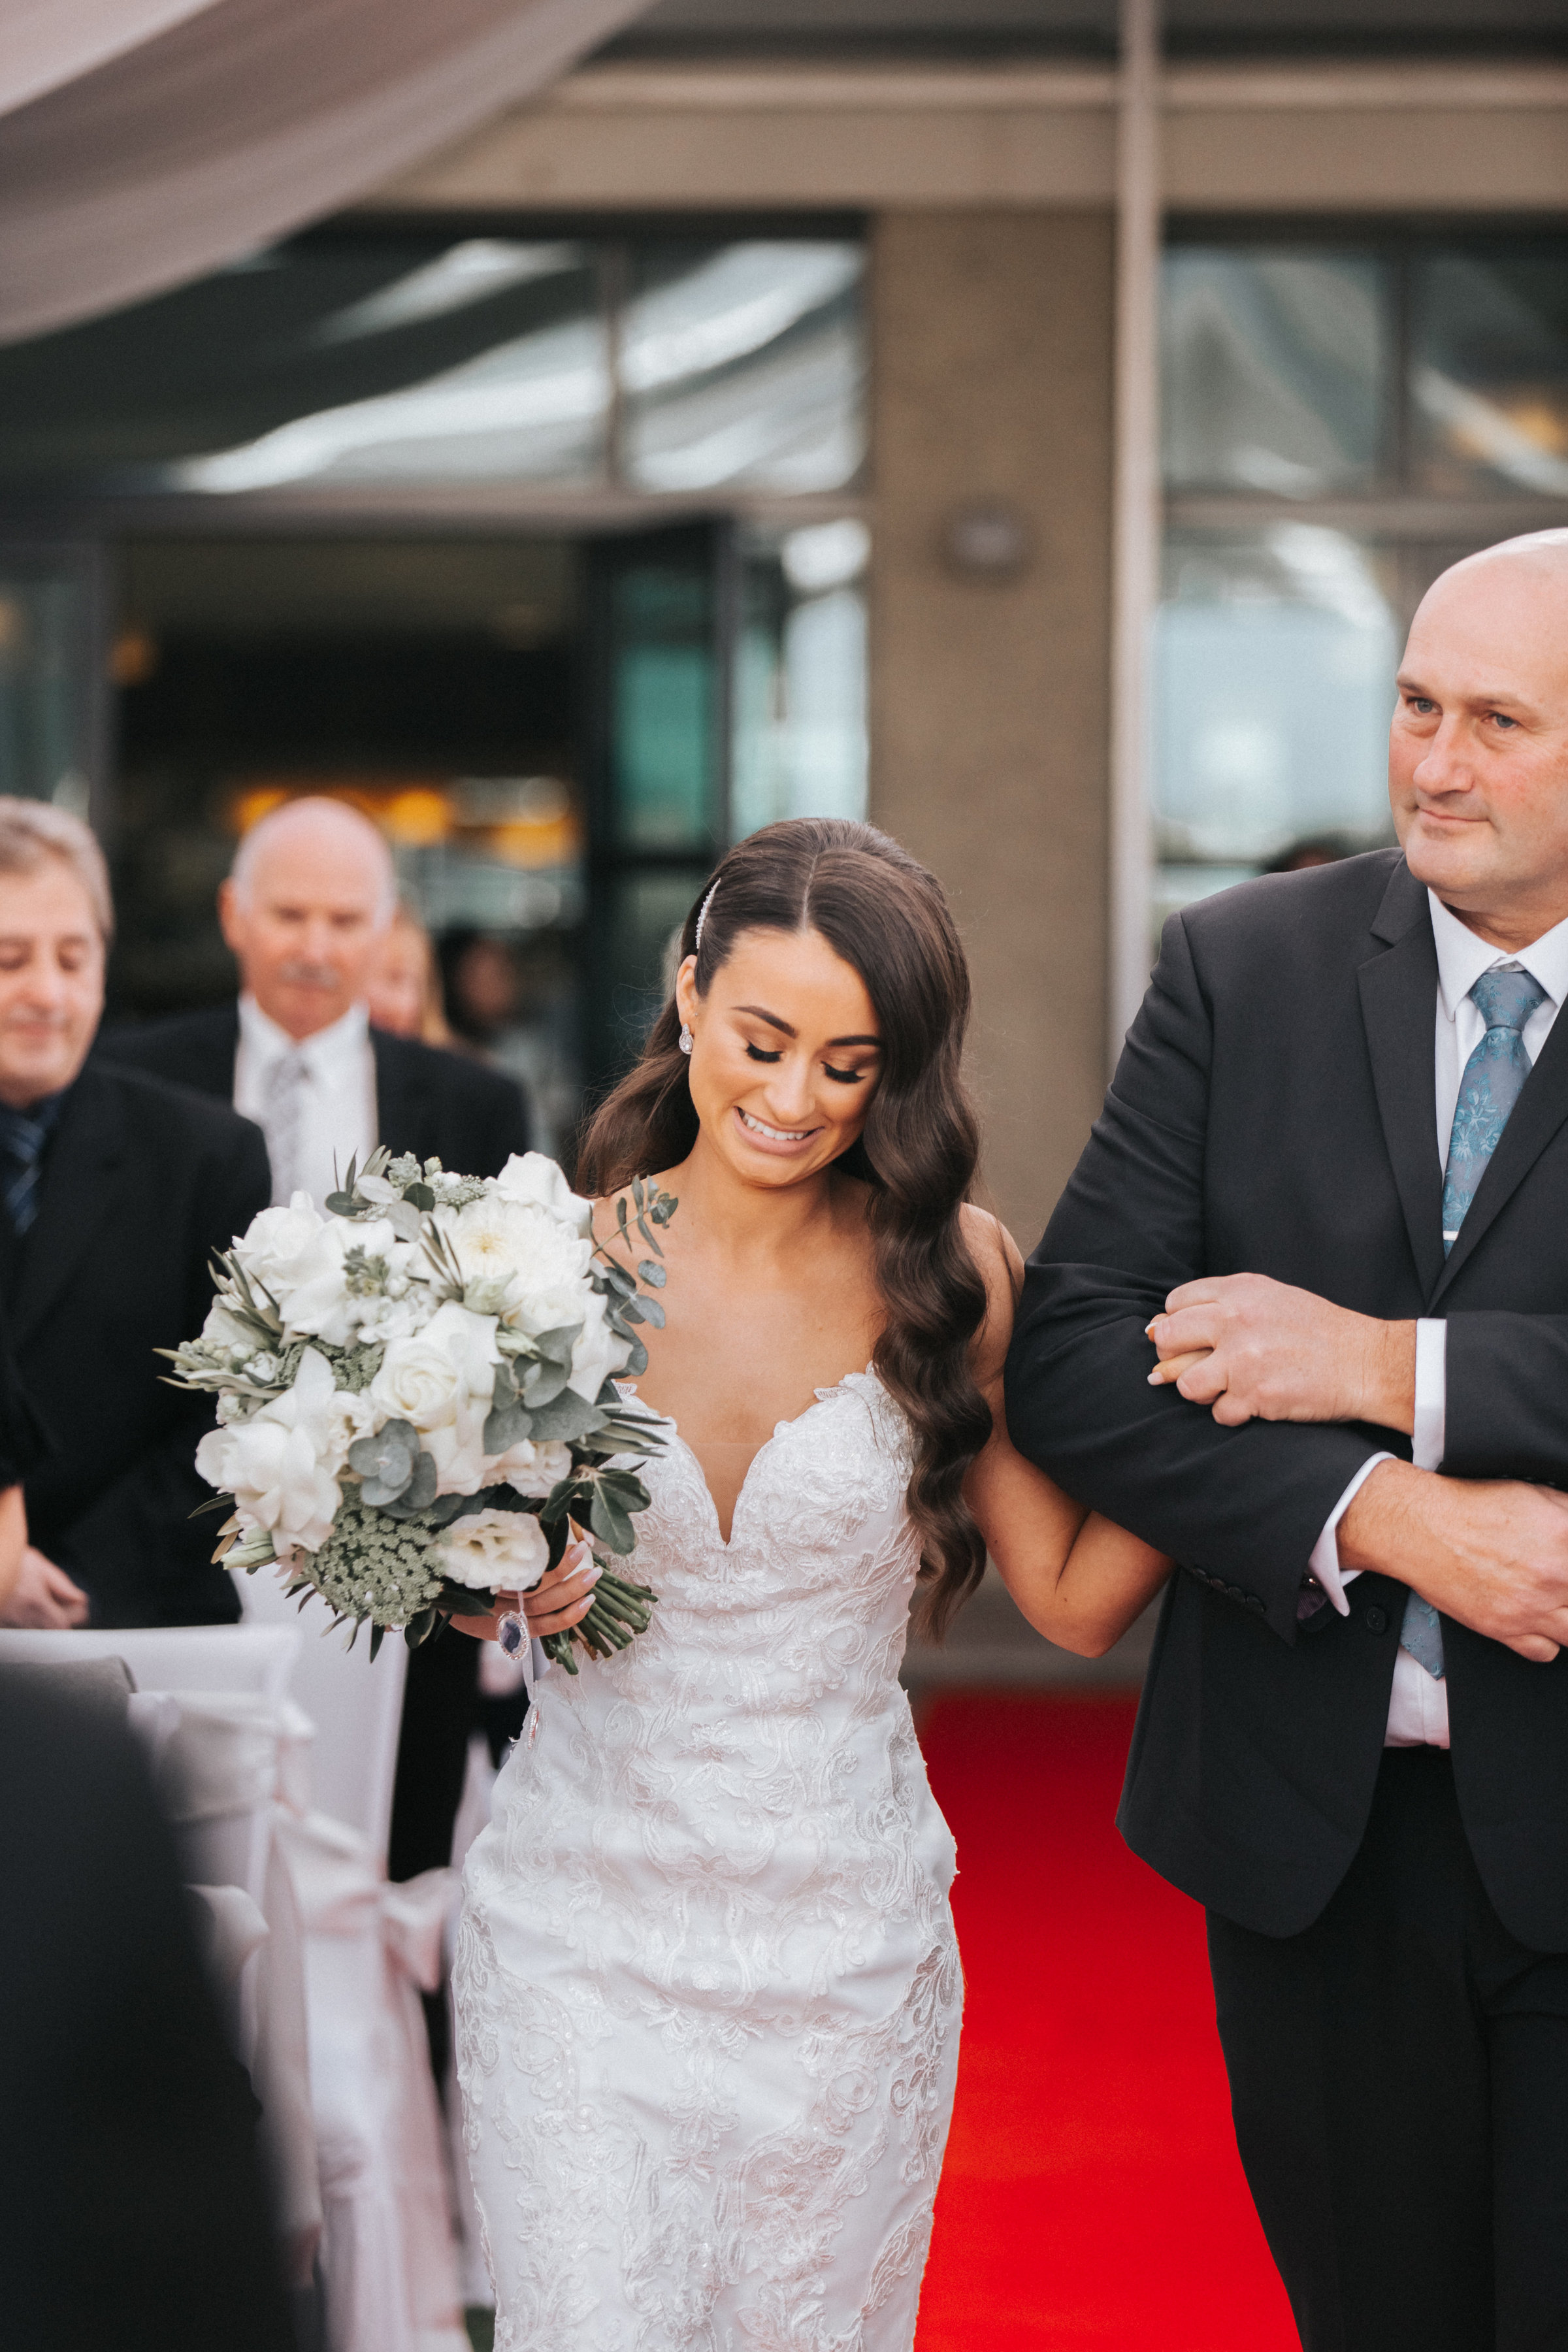 Father of Bride walking down the aisle at Yering Meadows Golf Club in Yarra Valley